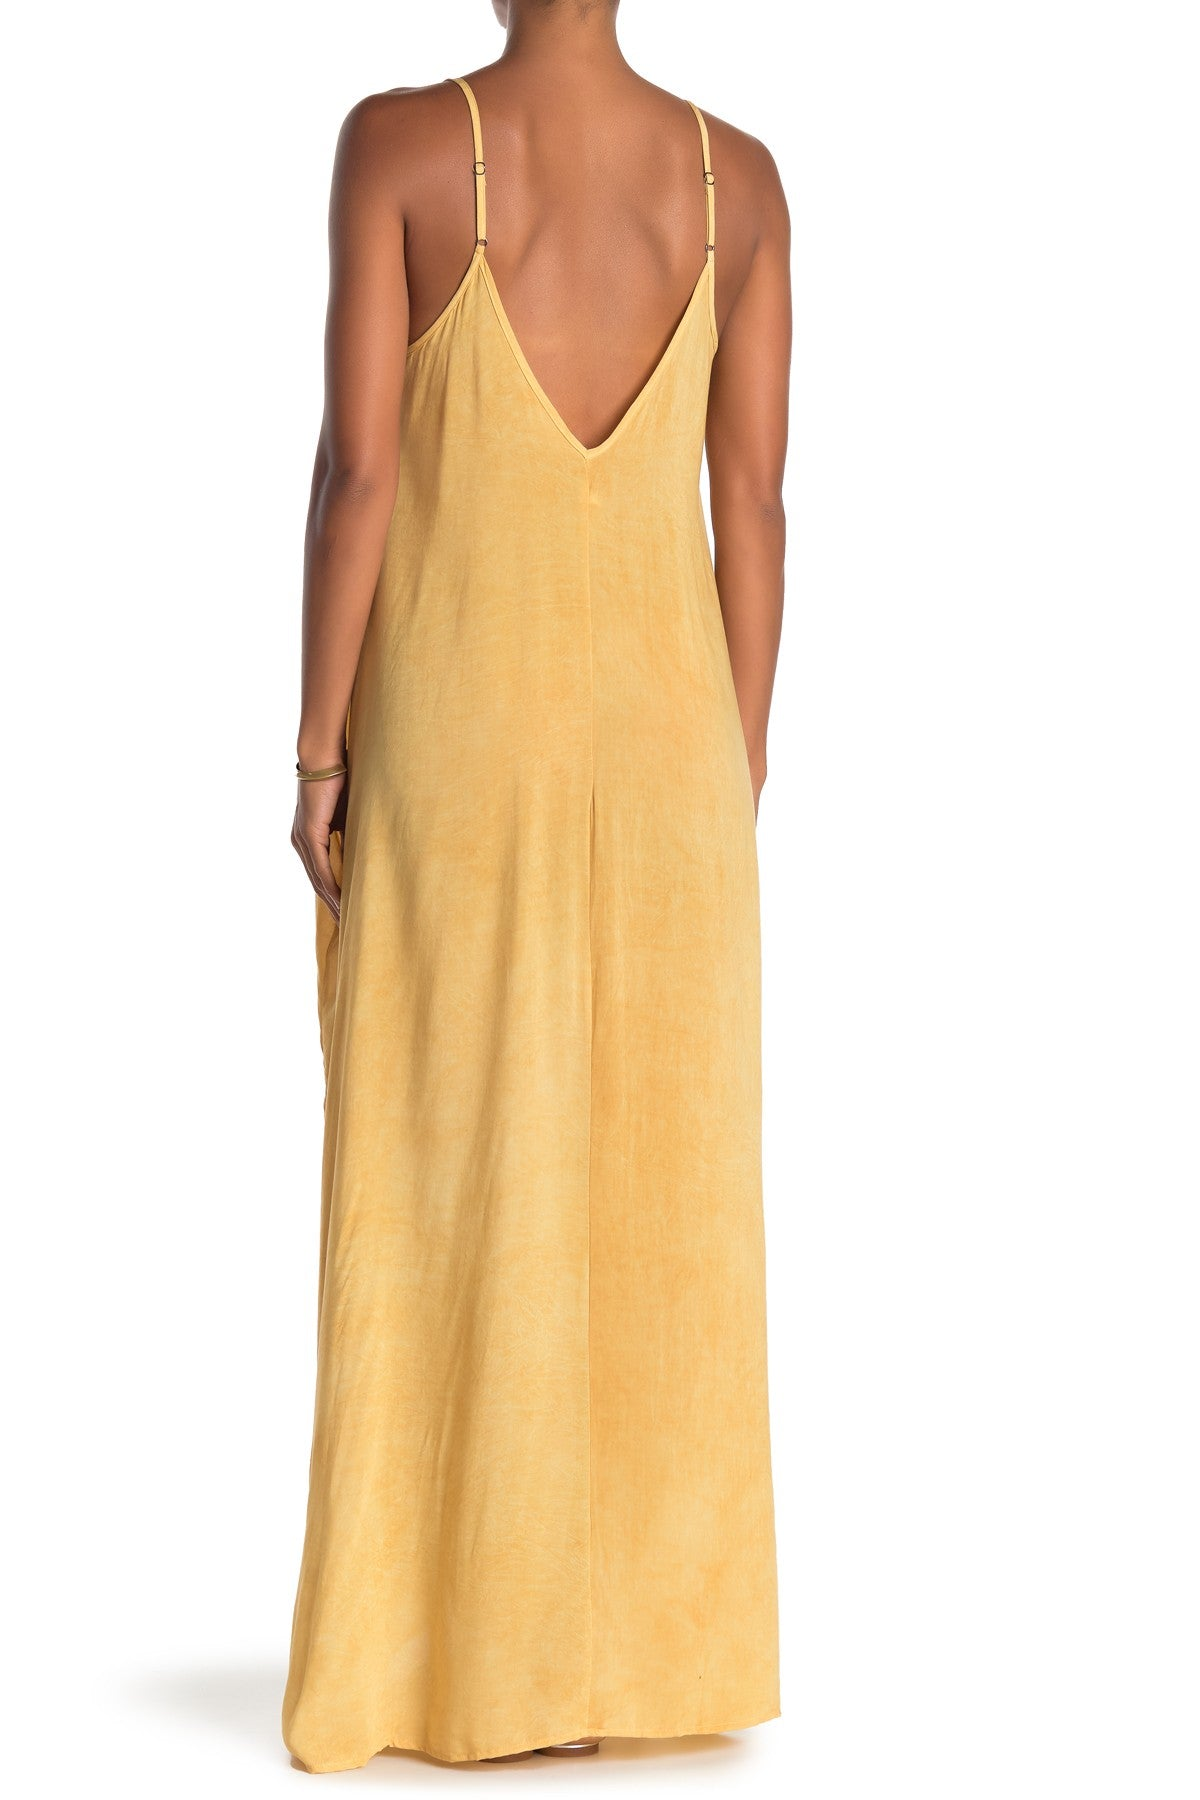 Mustard Yellow Spaghetti Strap Maxi Dress